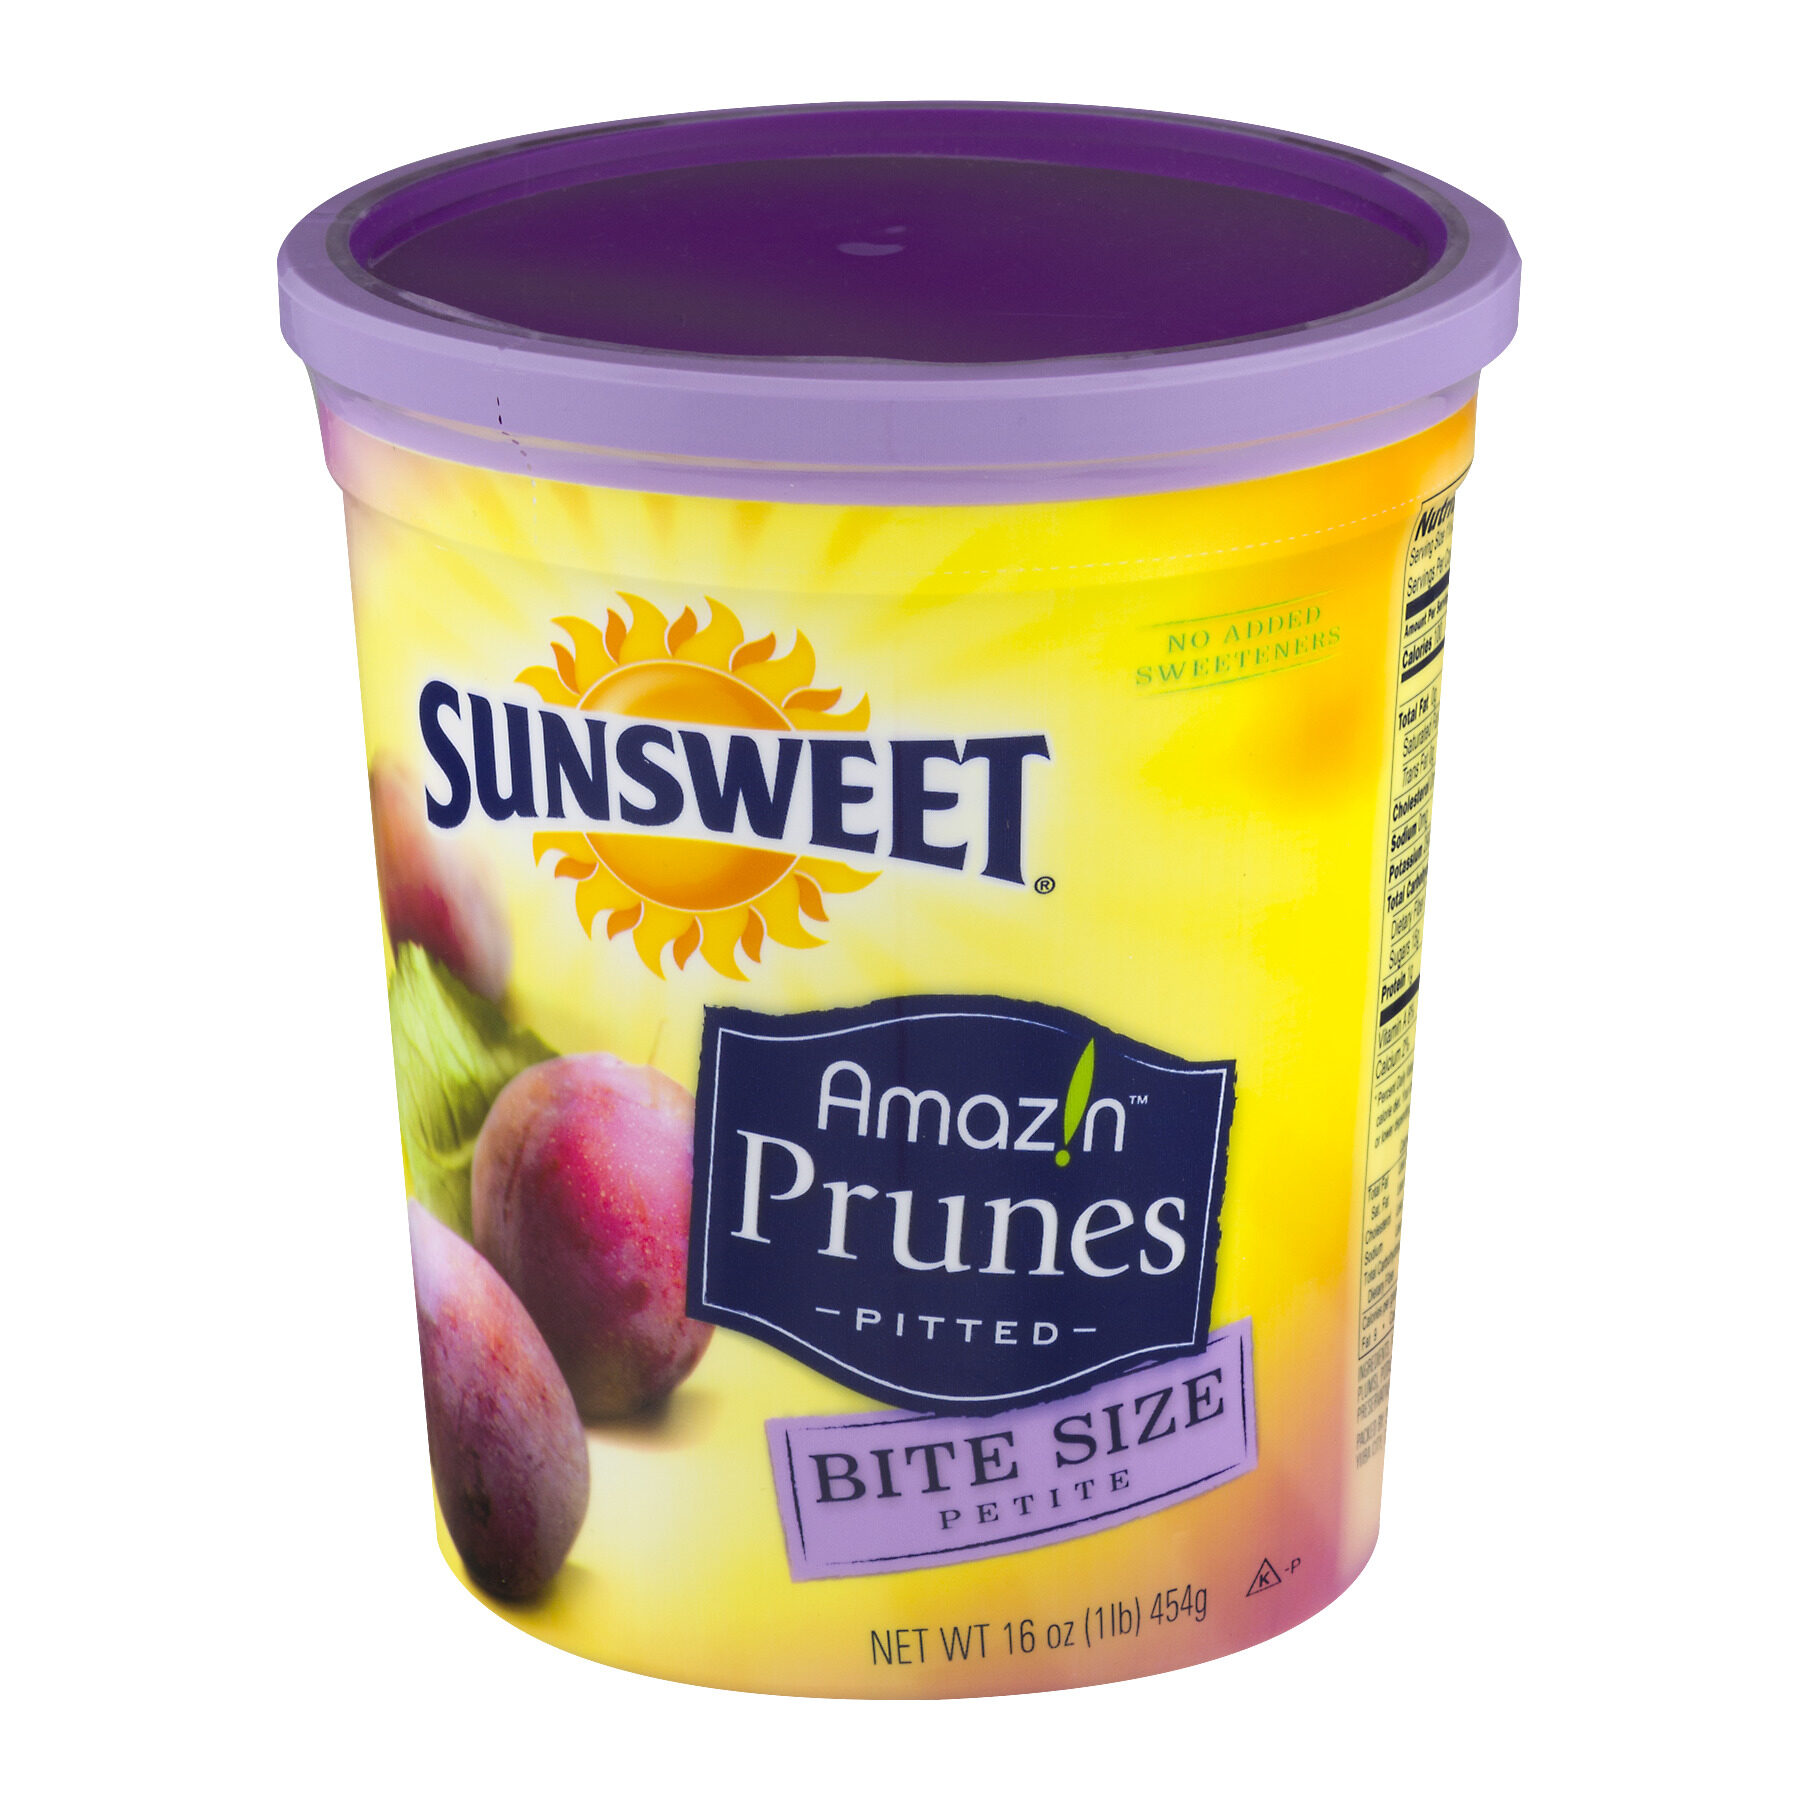 [FSC] Sunsweet Pitted Prunes 250gm *BITE SIZE